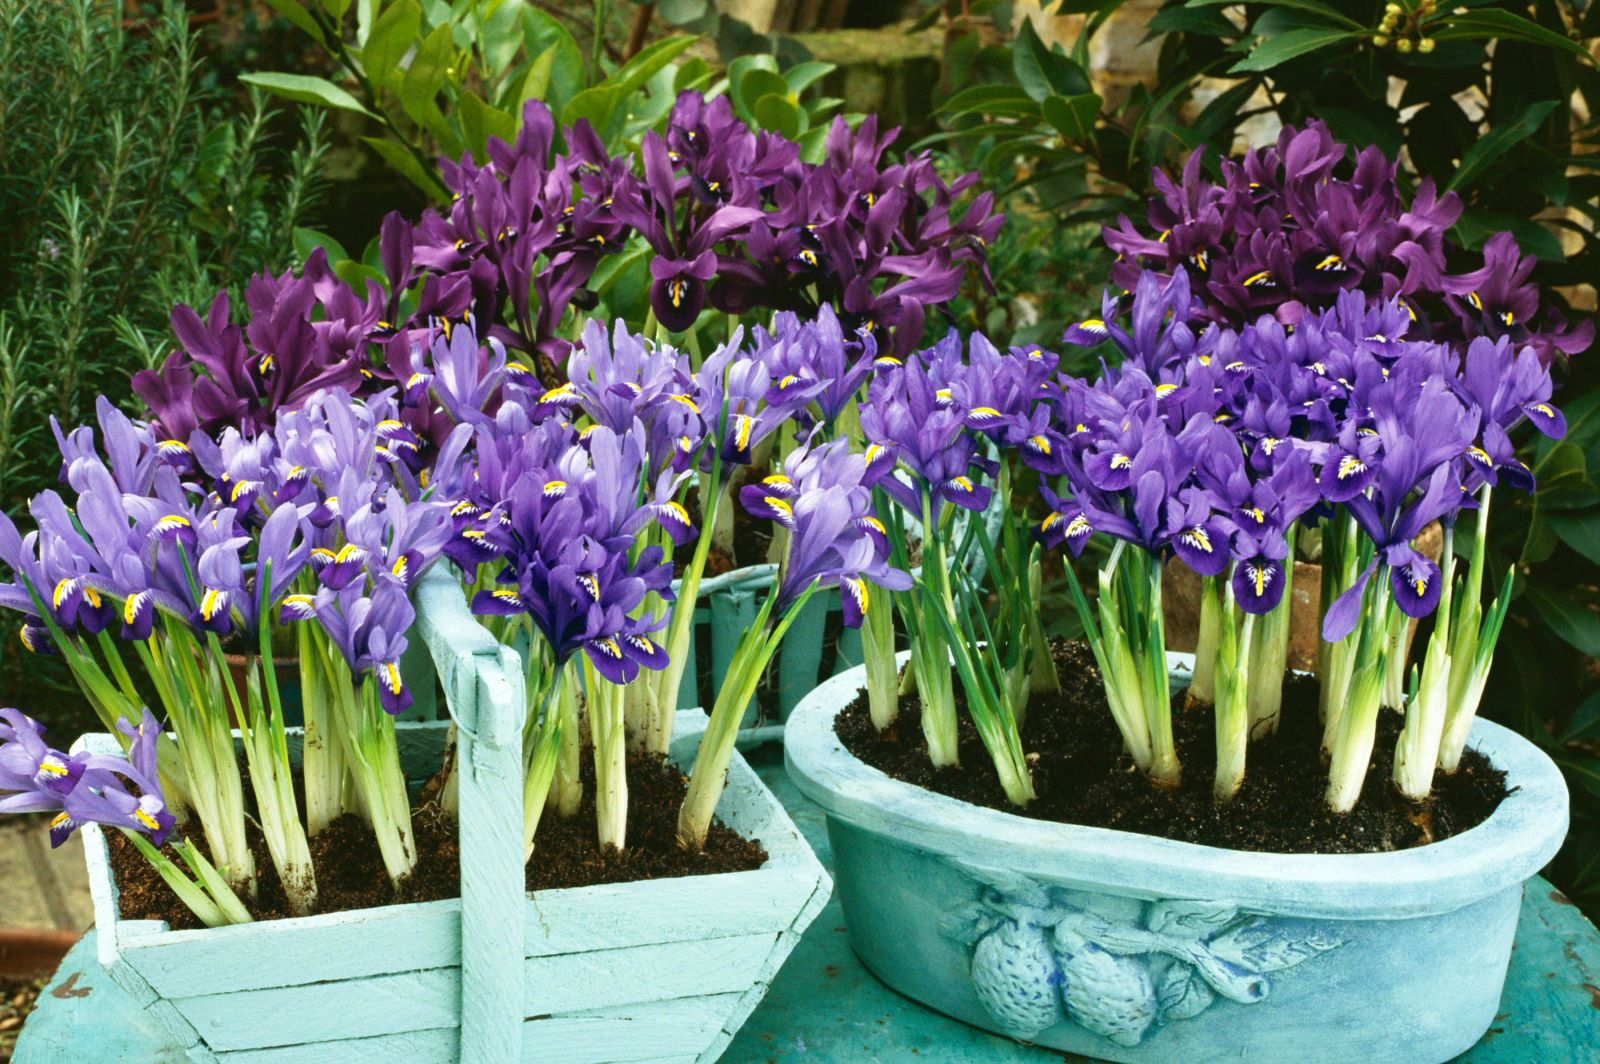 50 Flowers You Should Have In Your Garden Flower Pictures Iris